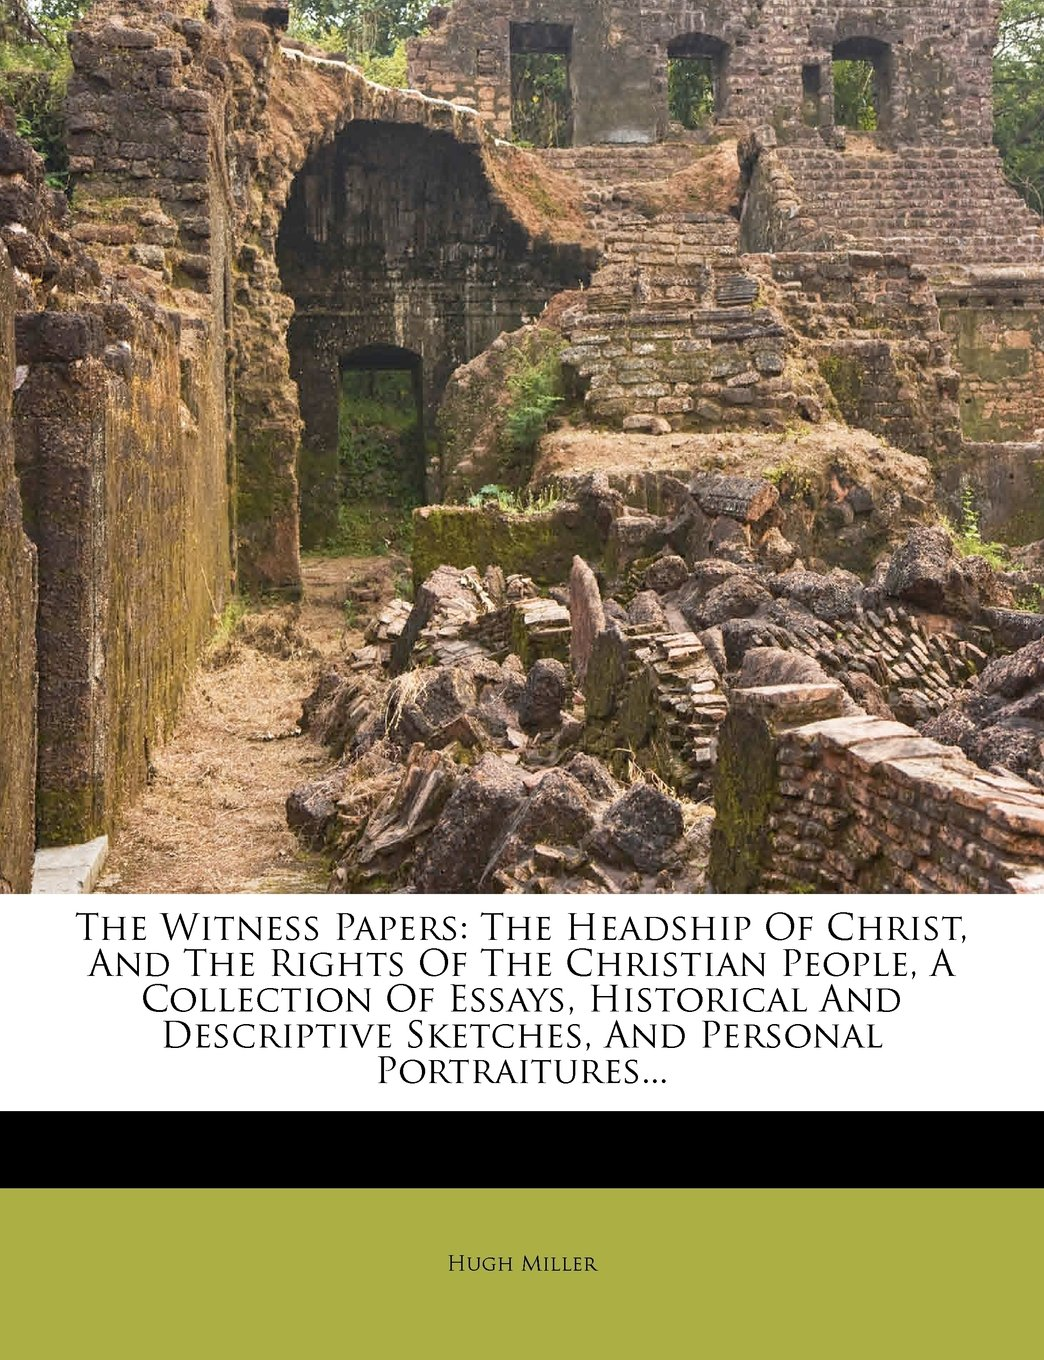 The Witness Papers: The Headship Of Christ, And The Rights Of The Christian People, A Collection Of Essays, Historical And Descriptive Sketches, And Personal Portraitures... ebook